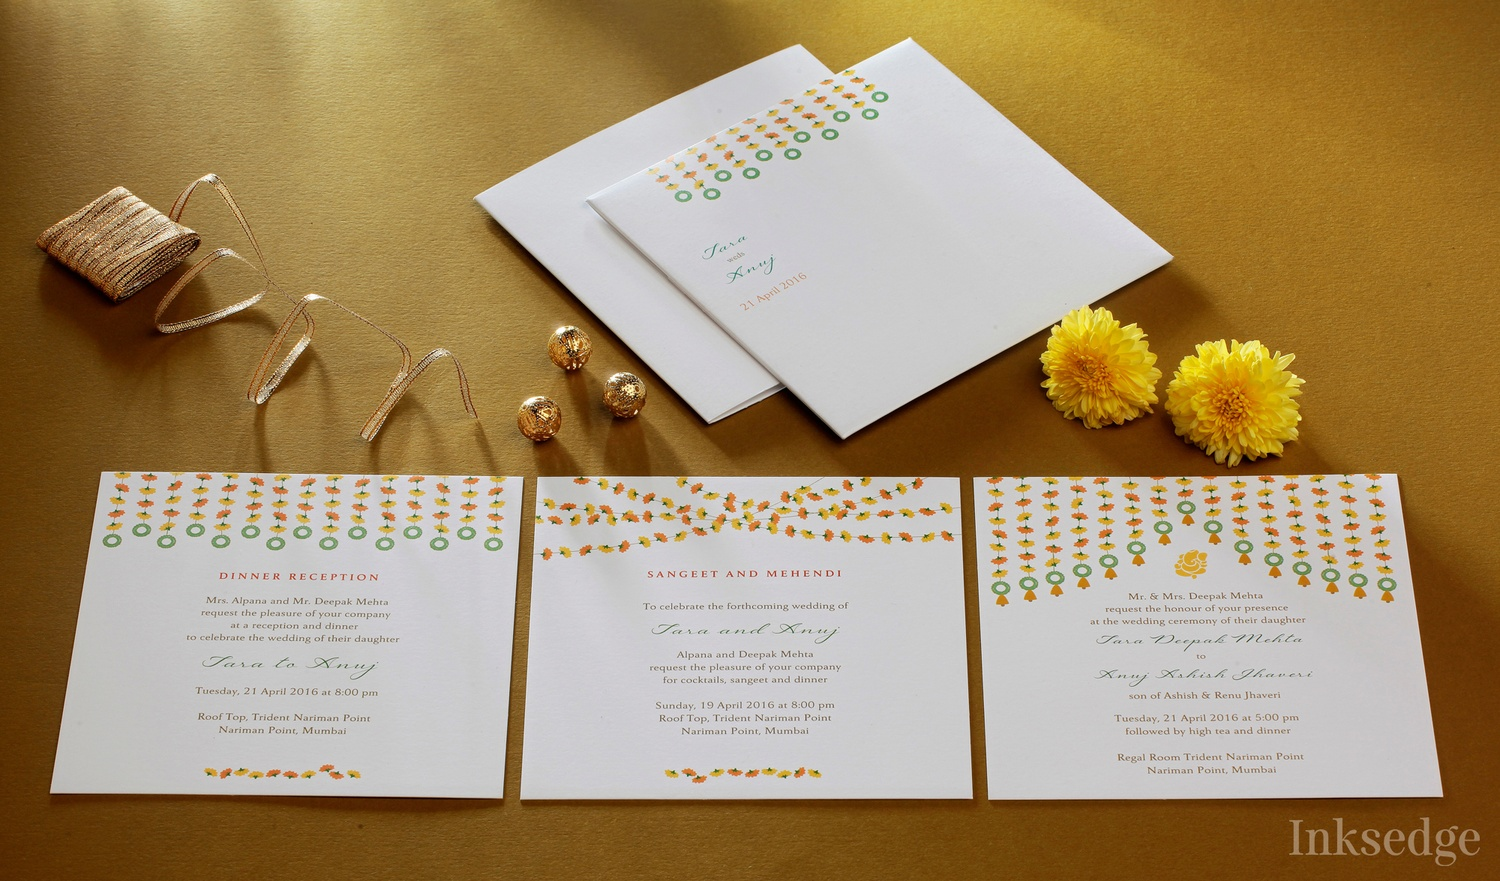 Inksedge wedding invitation card in bangalore weddingz for Wedding invitation cards bangalore jayanagar